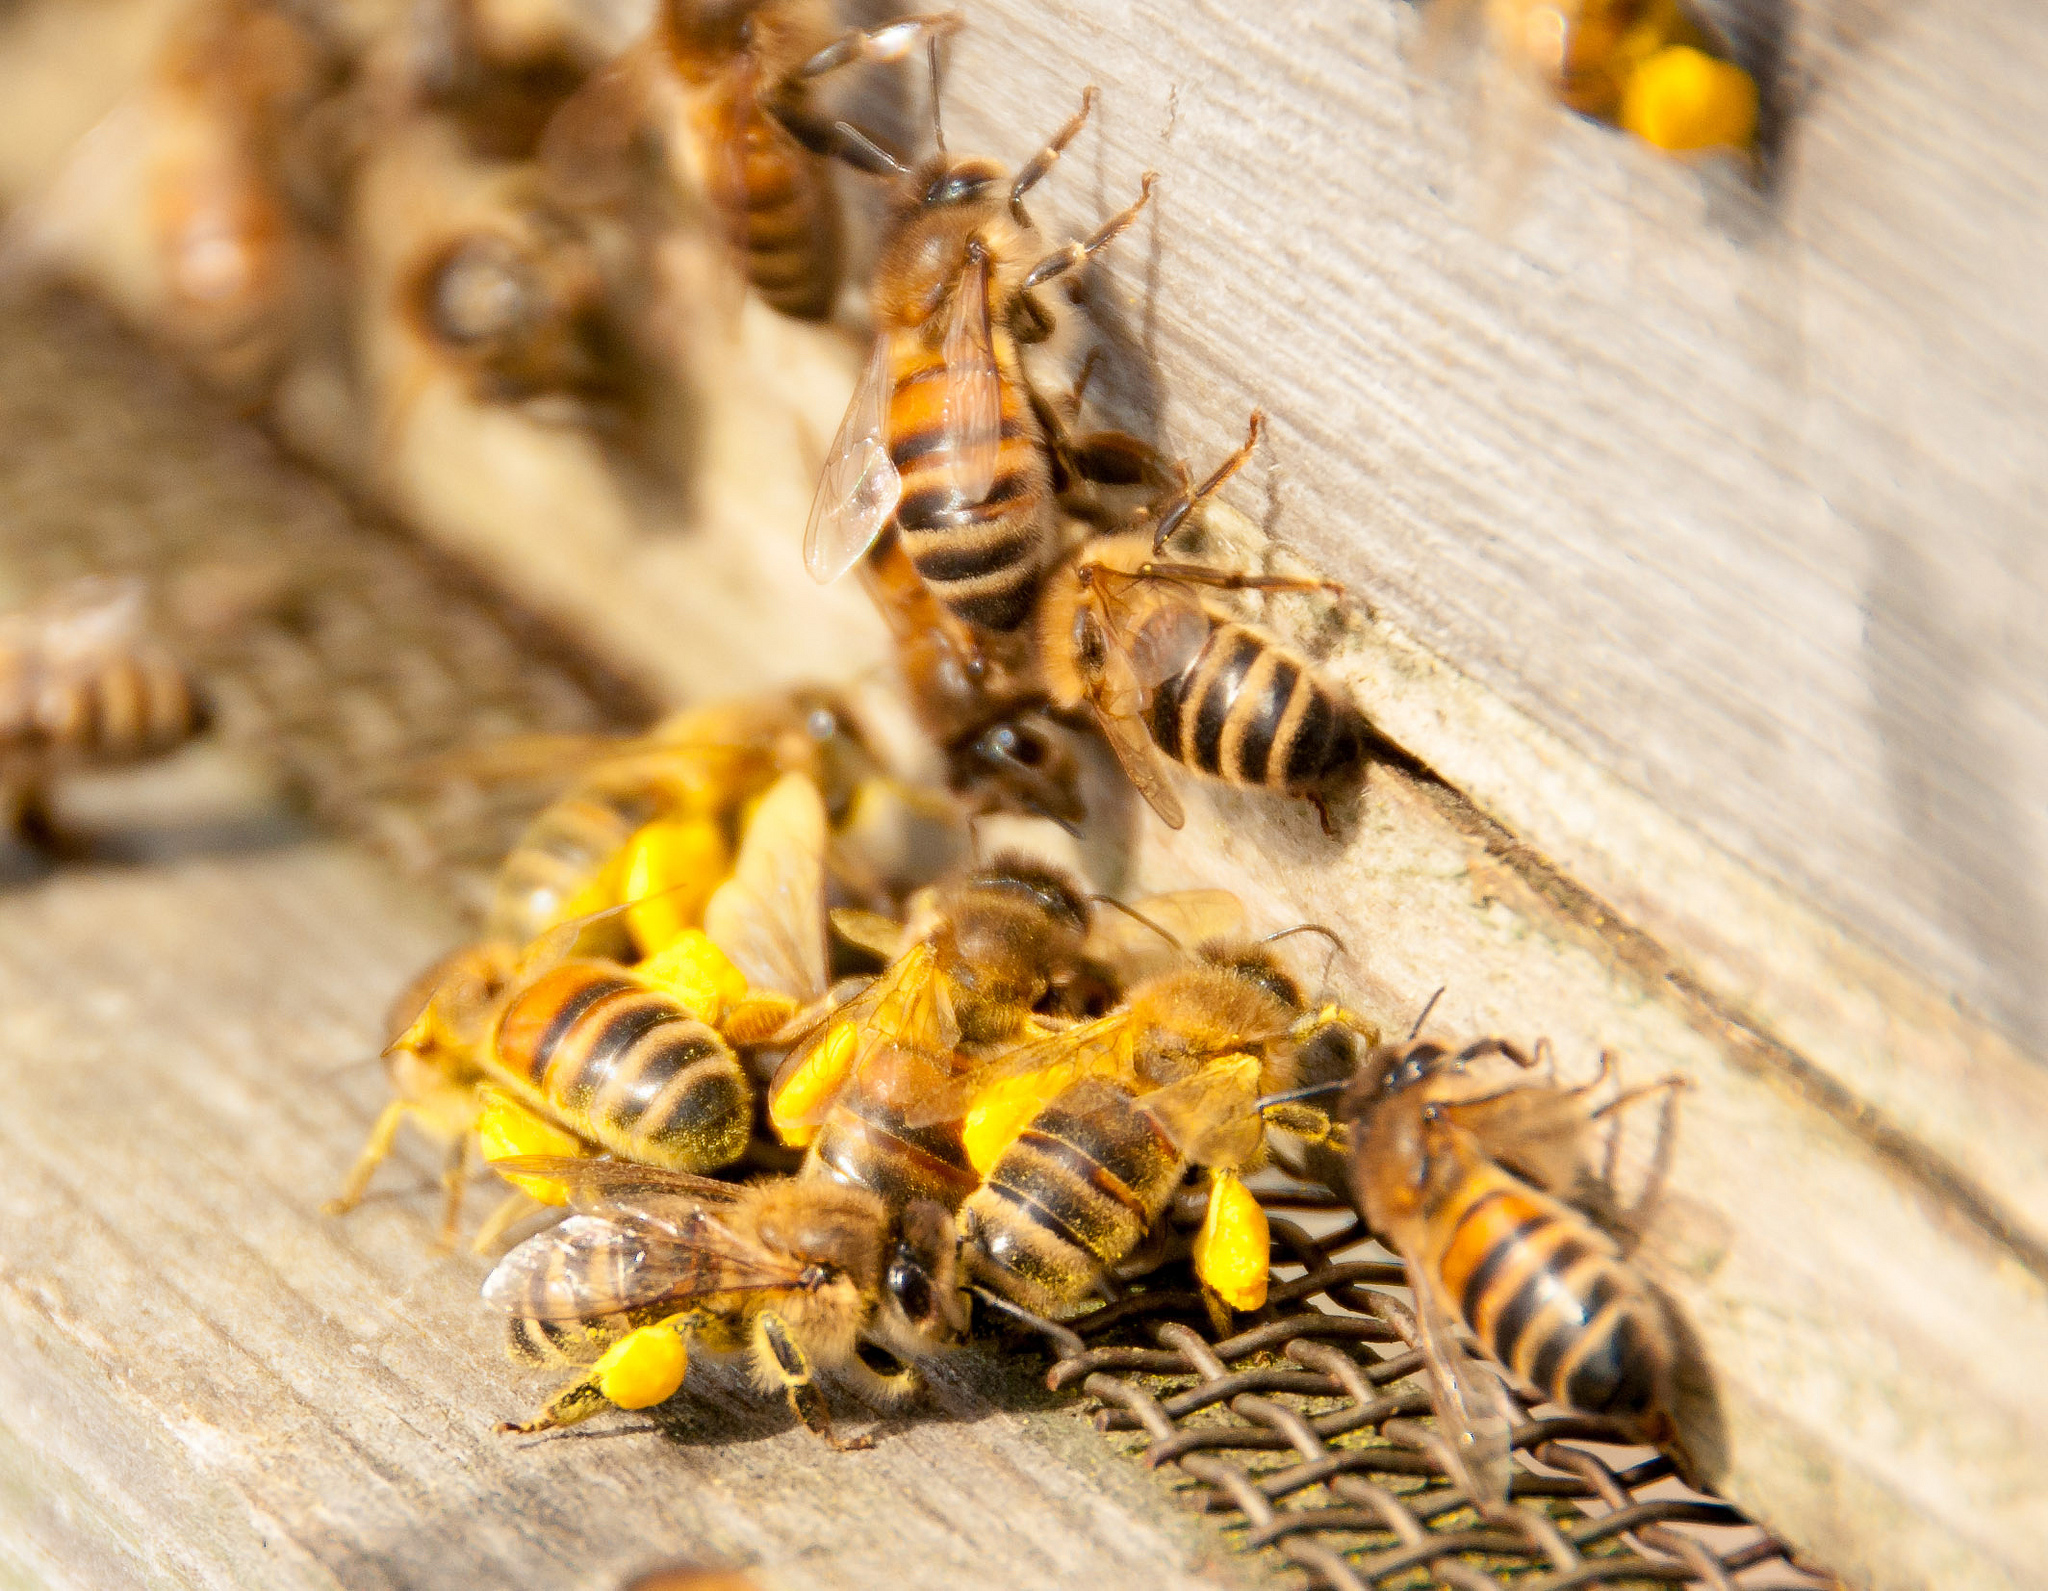 What Is Killing Bees?